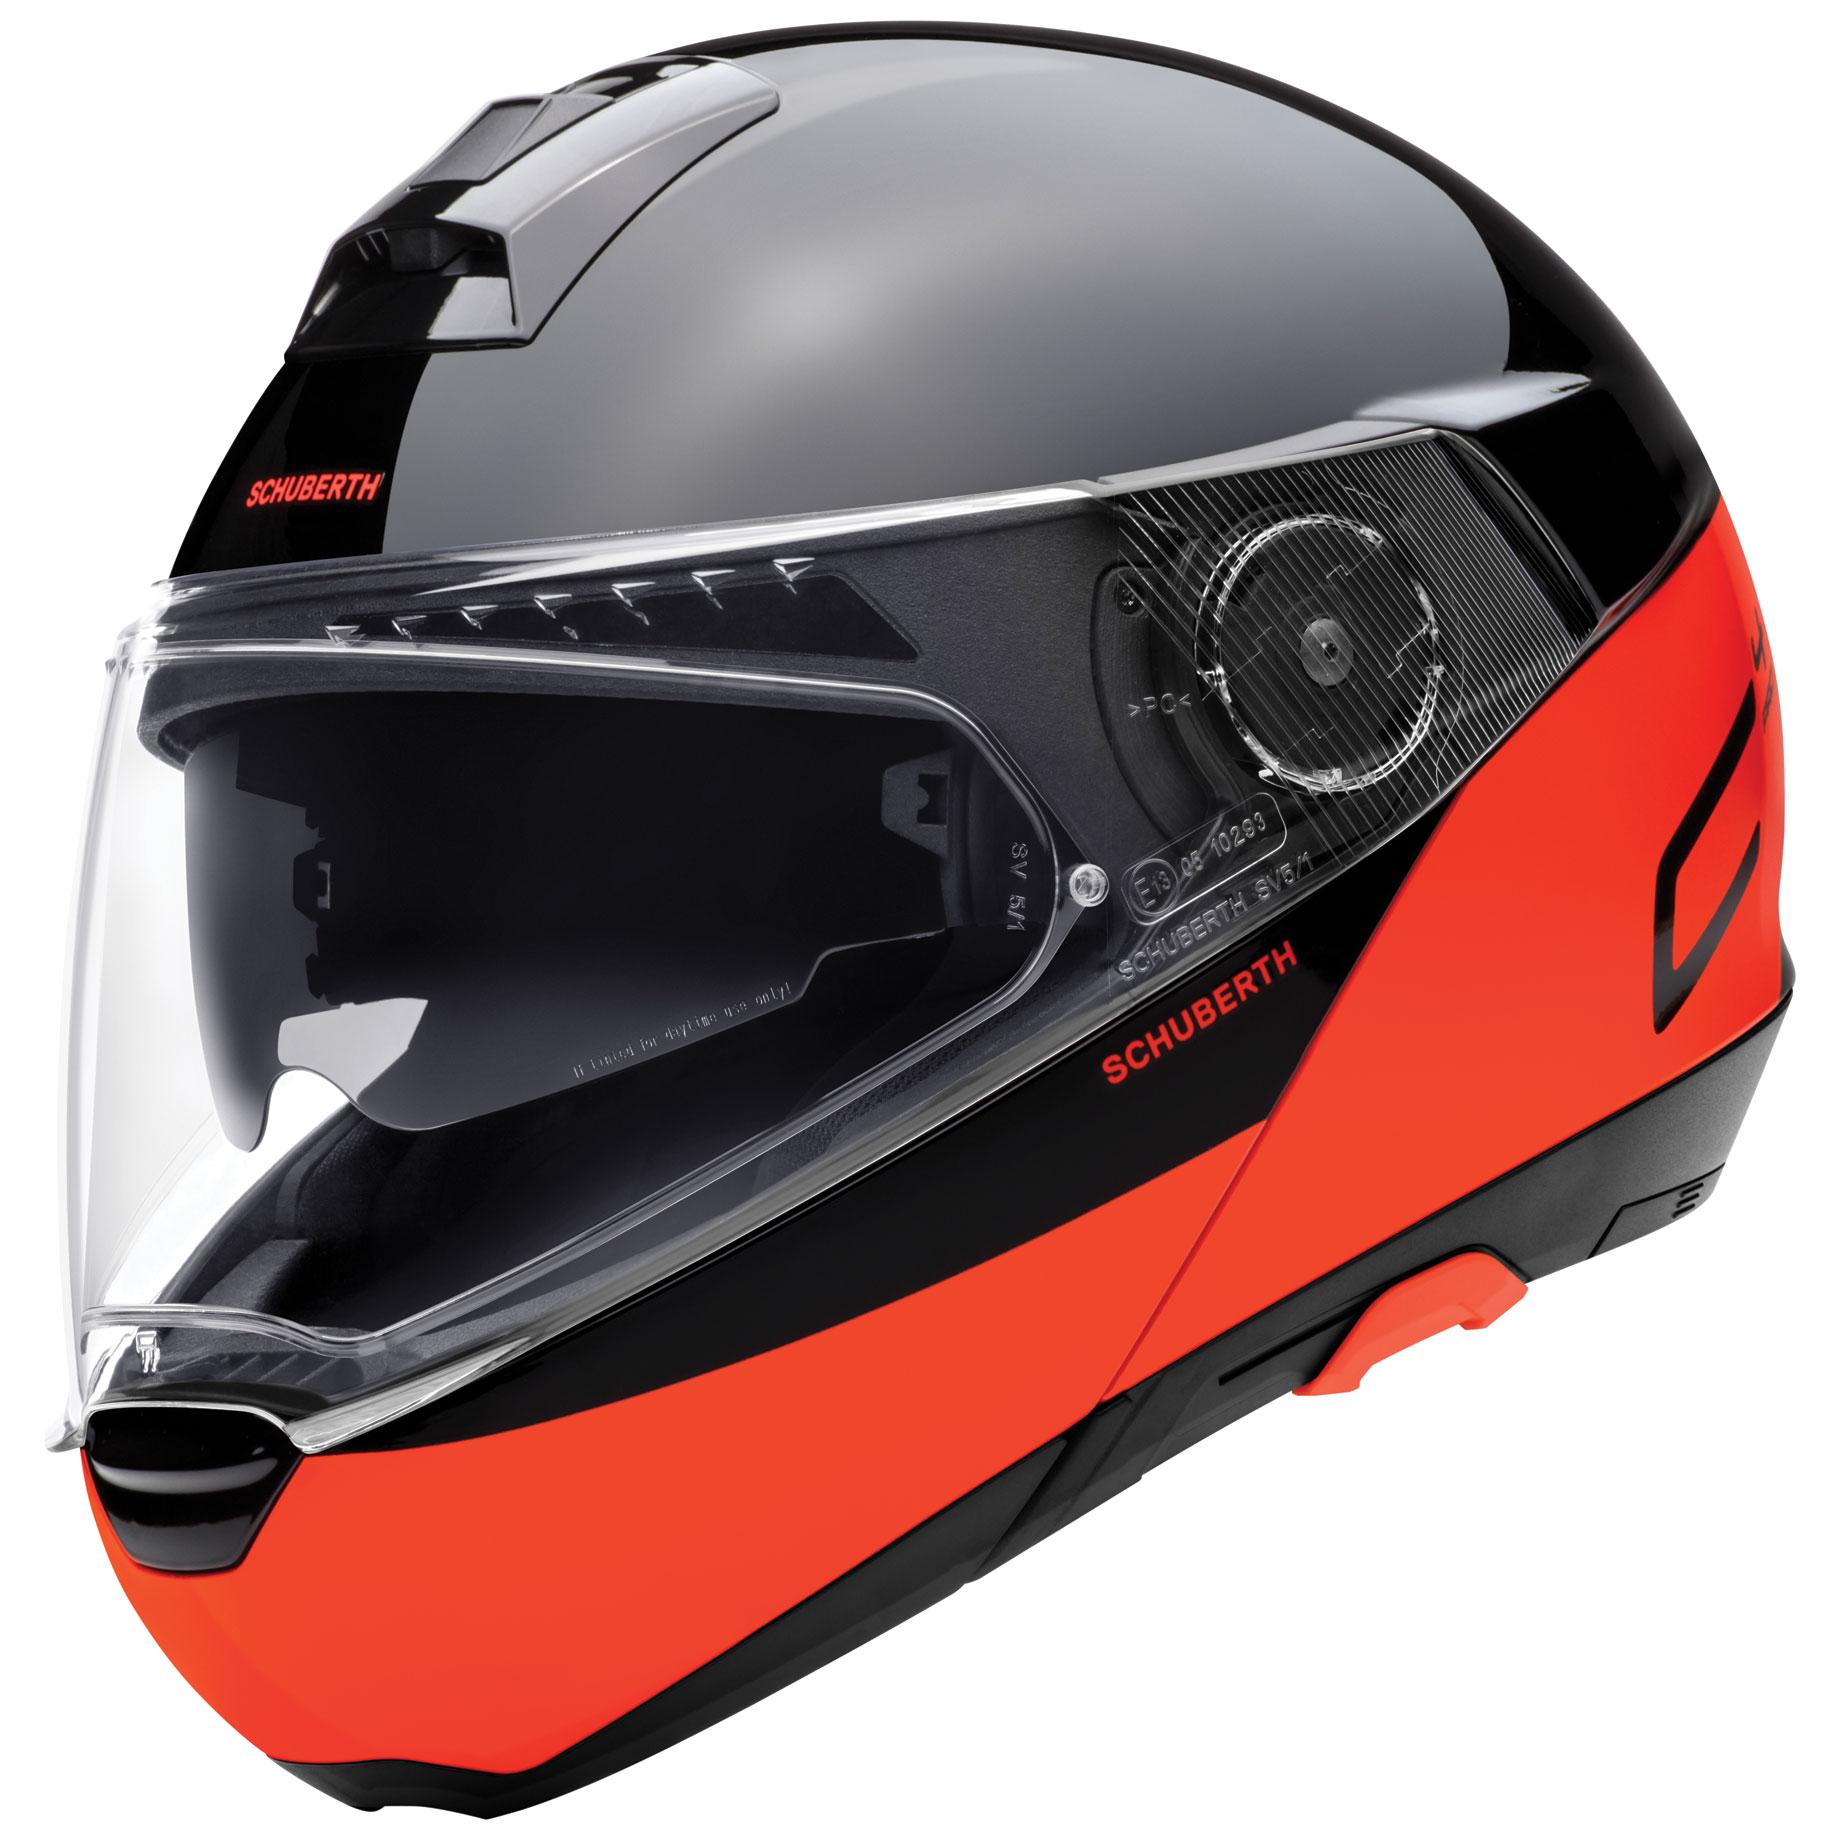 Schuberth C4 Pro Swipe Orange Modular Helmet